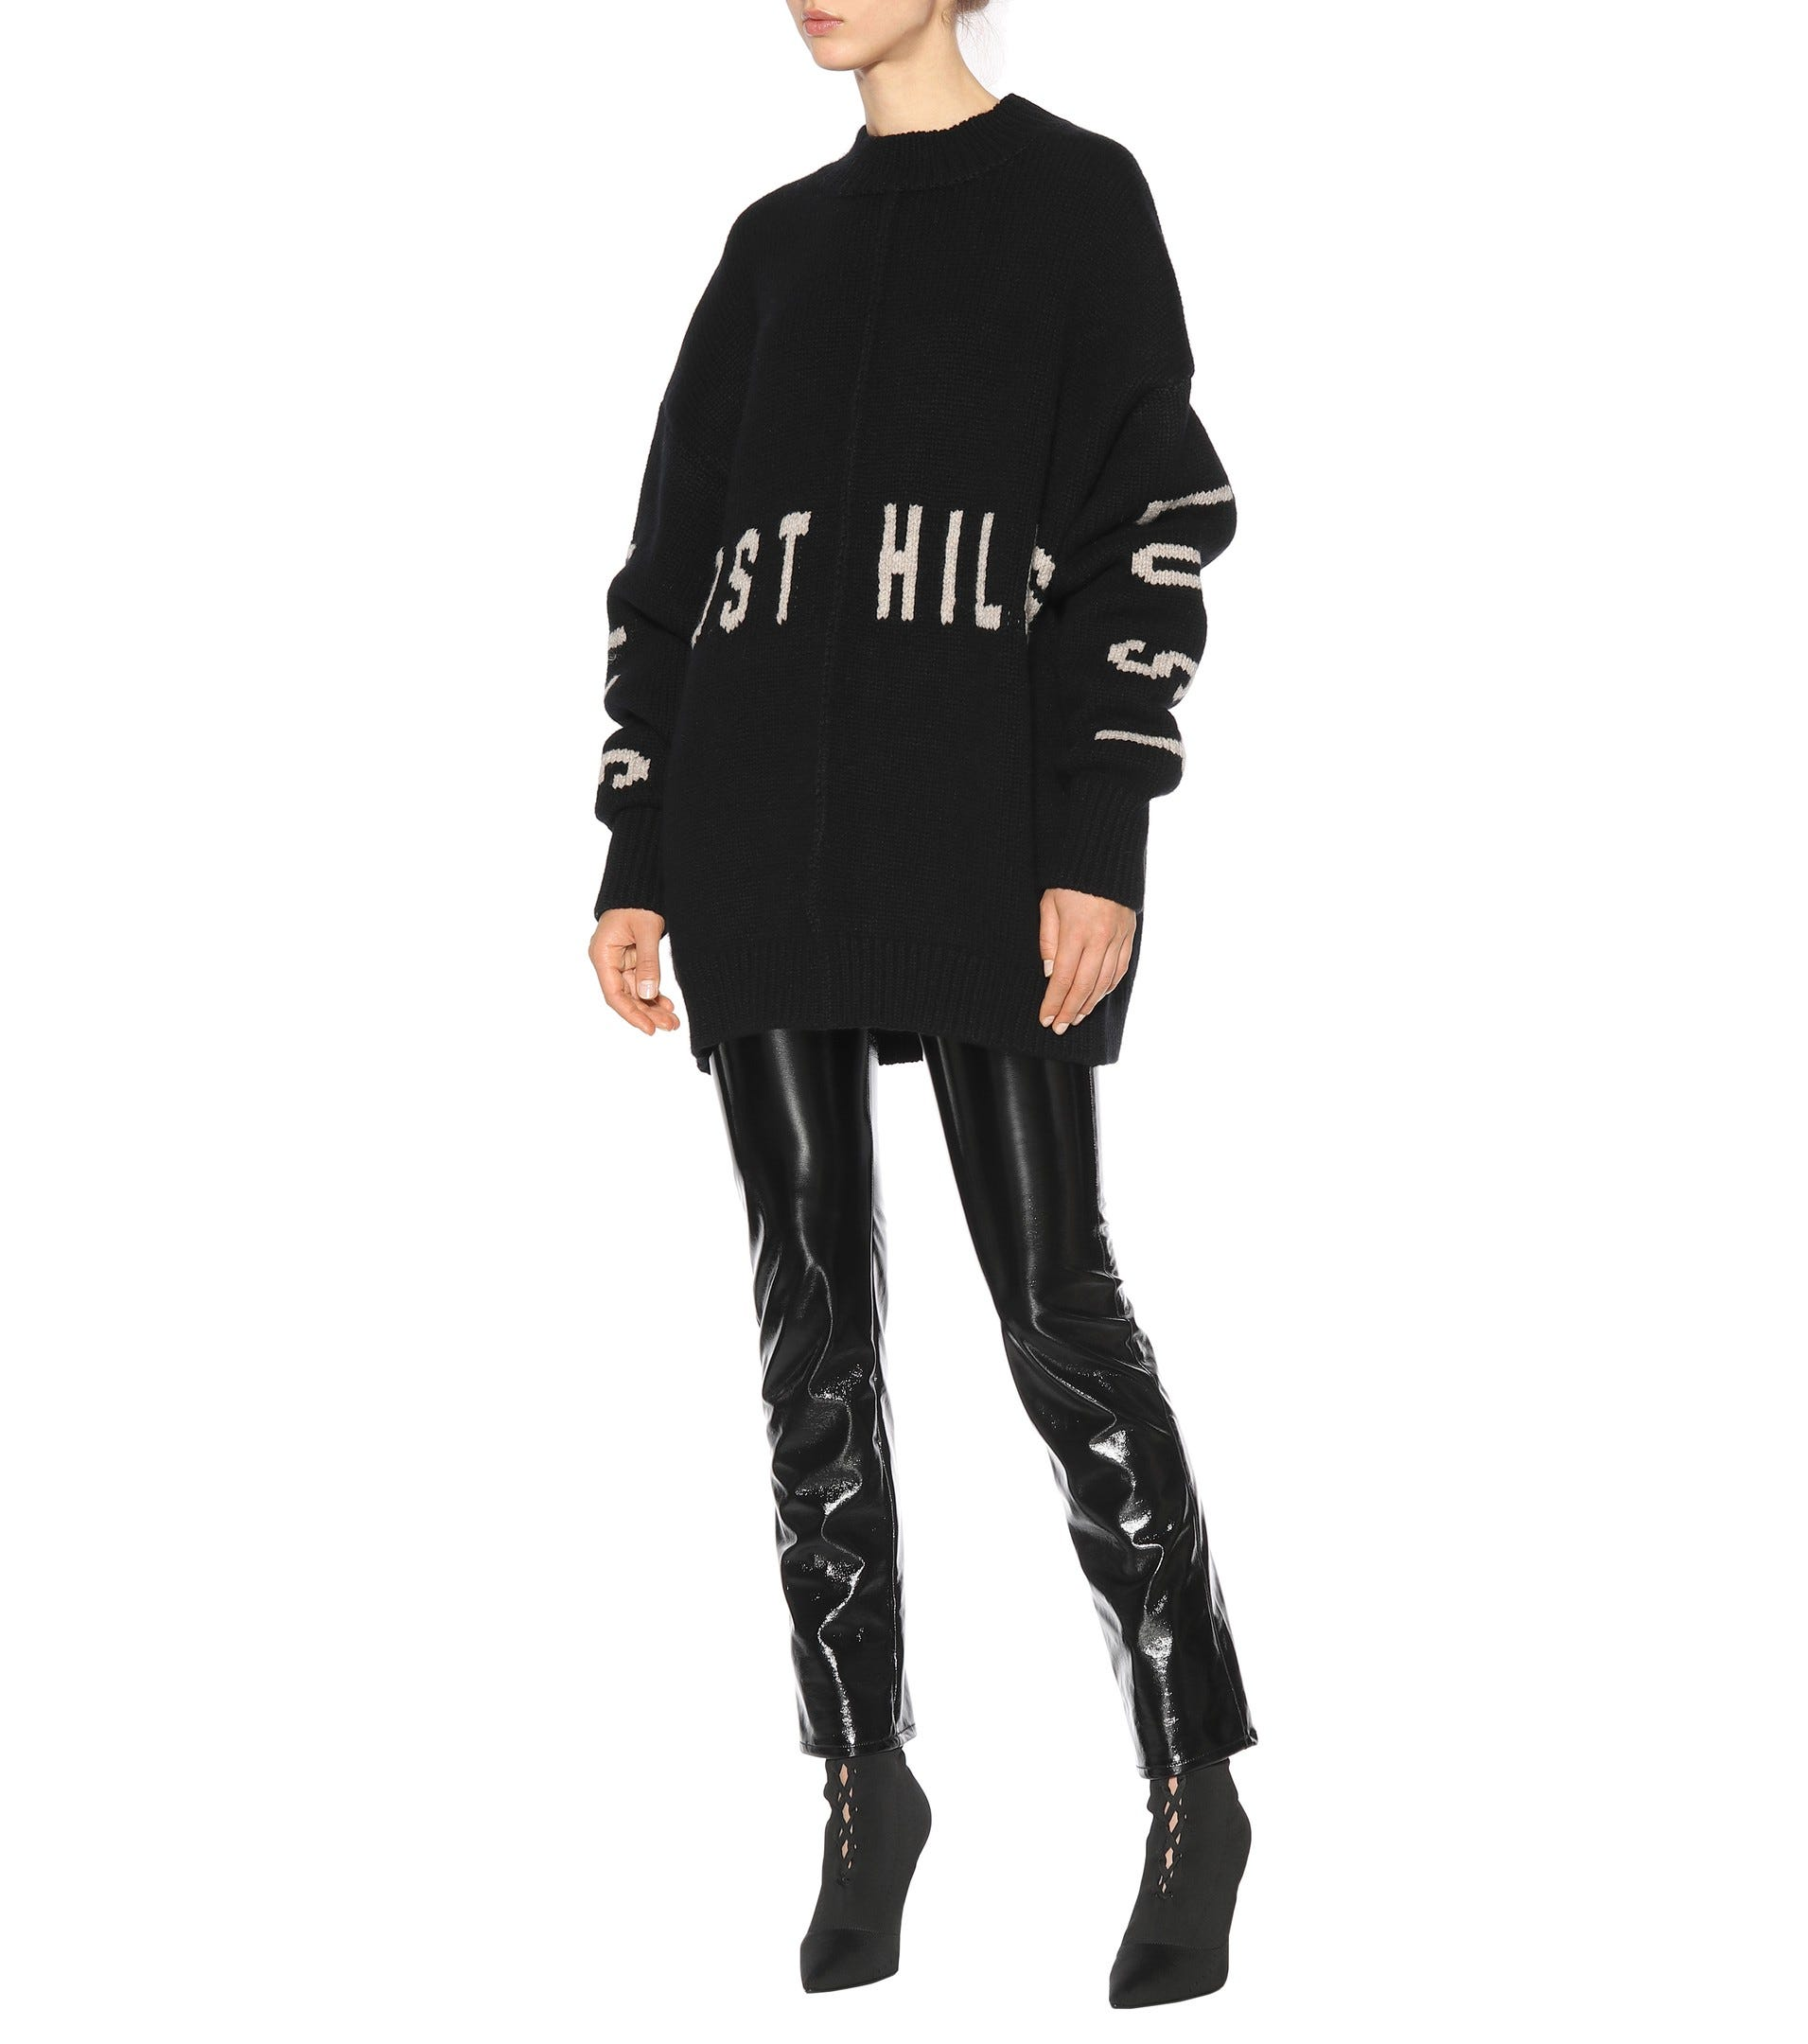 Cute Oversized Sweater For Women, Comfy Sweater Outfits